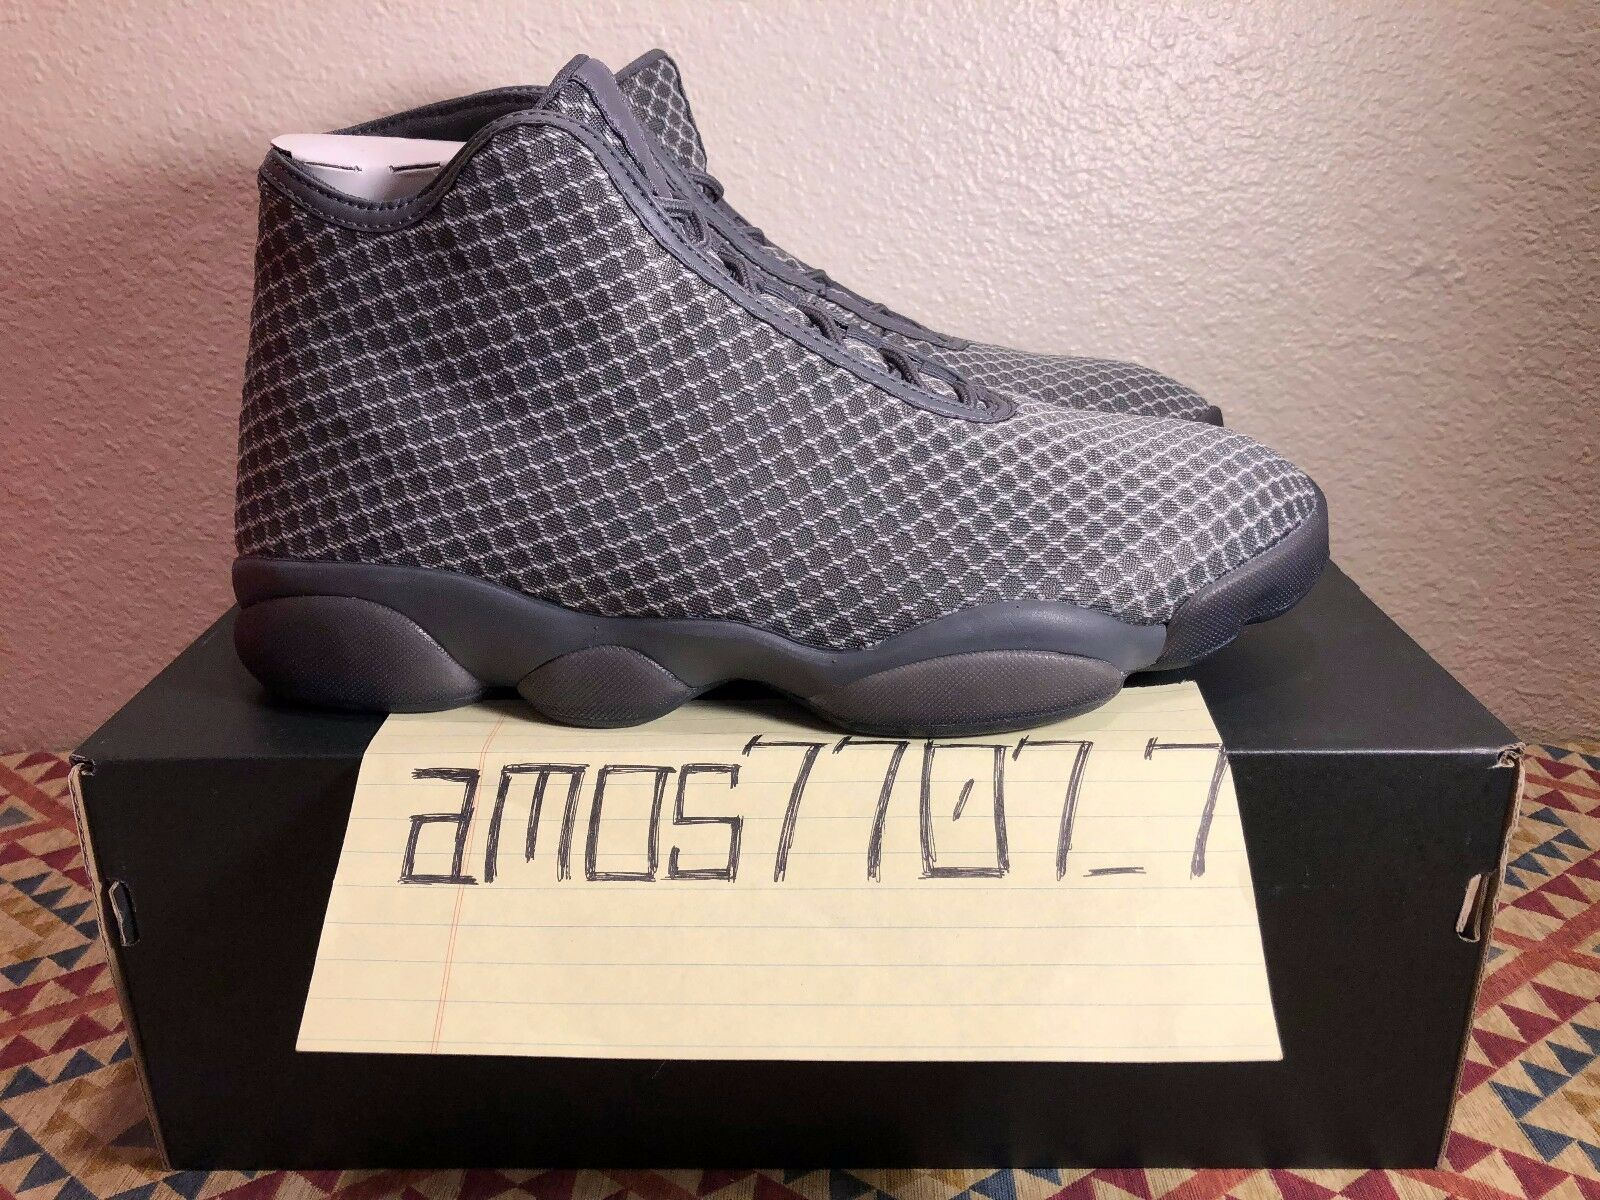 Nike Air Jordan Horizon Wolf Grey Dark Grey 823581 003 Men's DS Size SZ 11.5 13